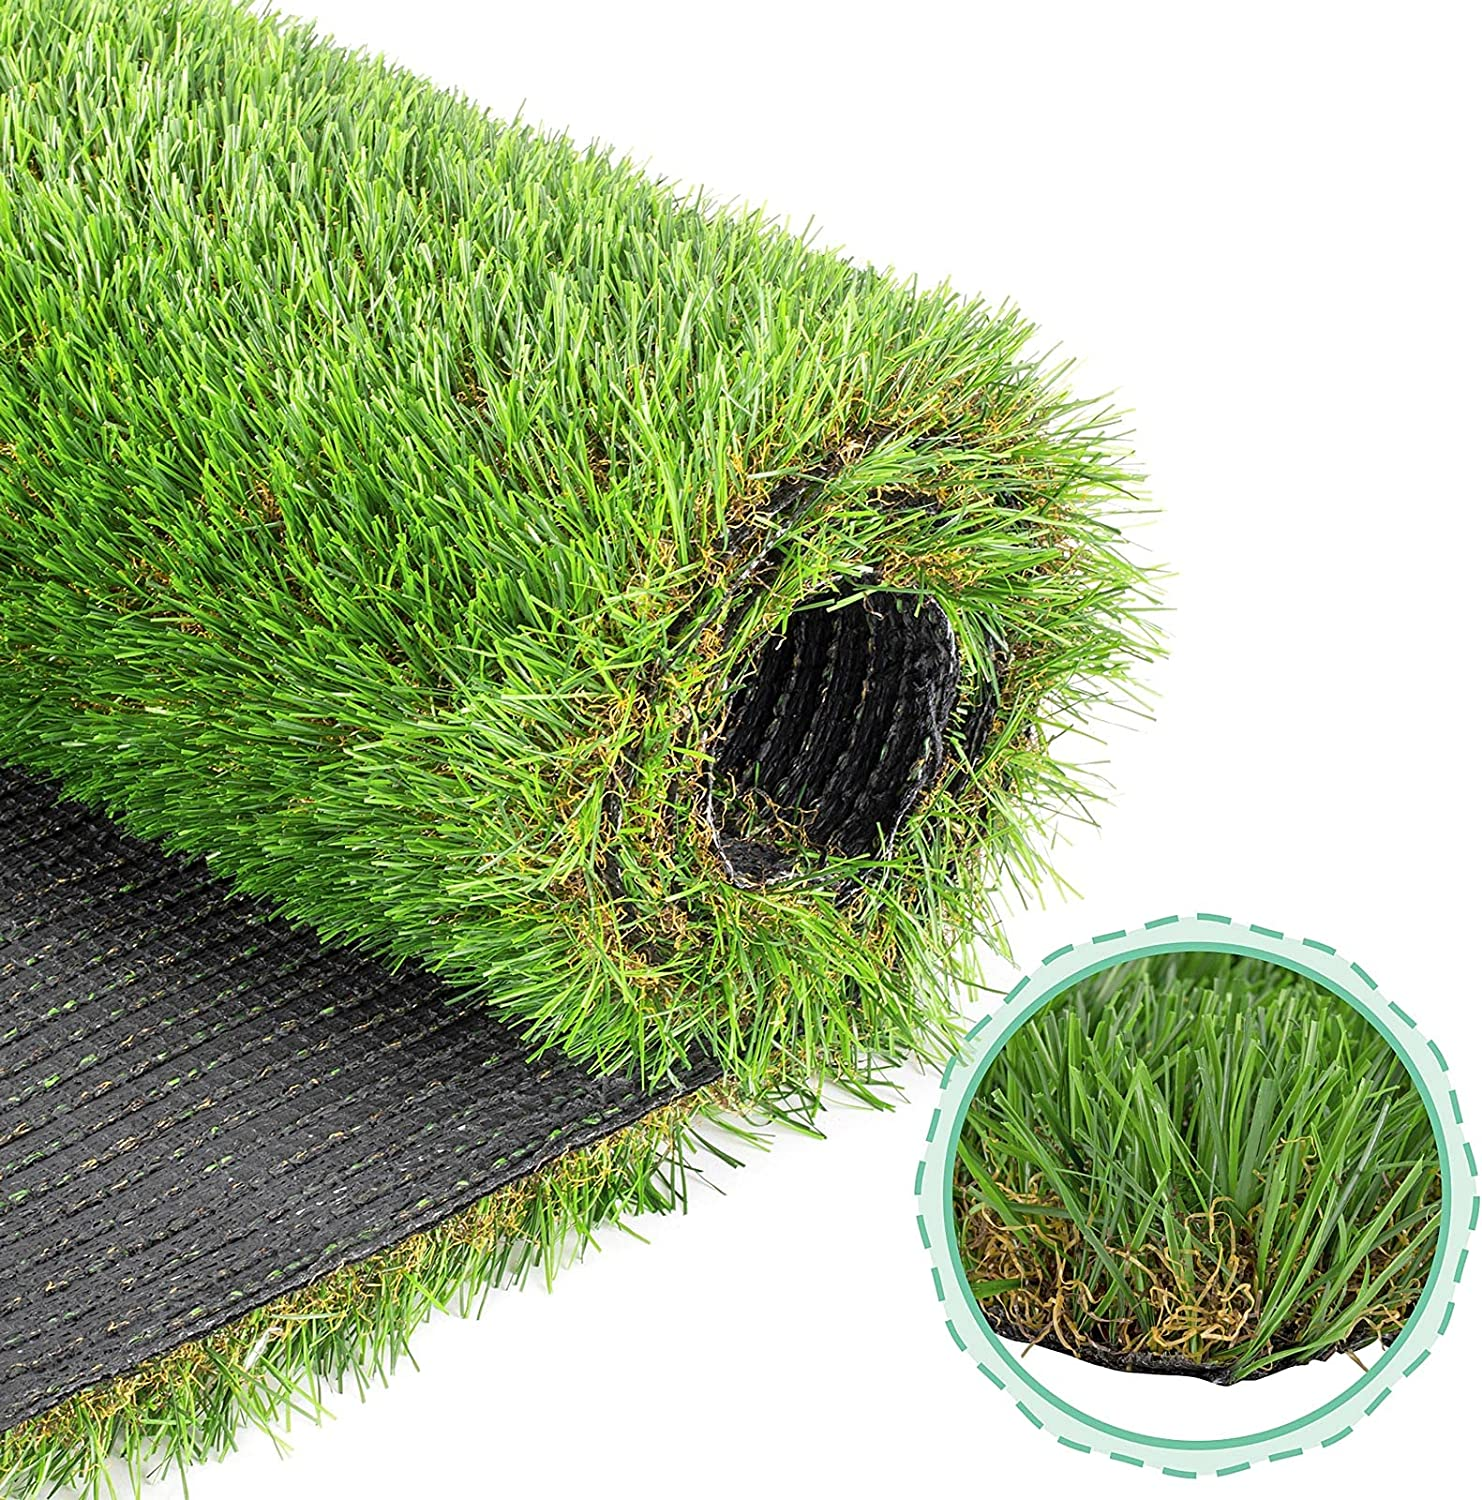 hygger Artificial Grass Turf, 4FT X 7FT(28 Square FT), Realistic Synthetic Artficial Turf Rug for Dogs, Indoor/Outdoor Garden Lawn Patio Balcony Grass Mat